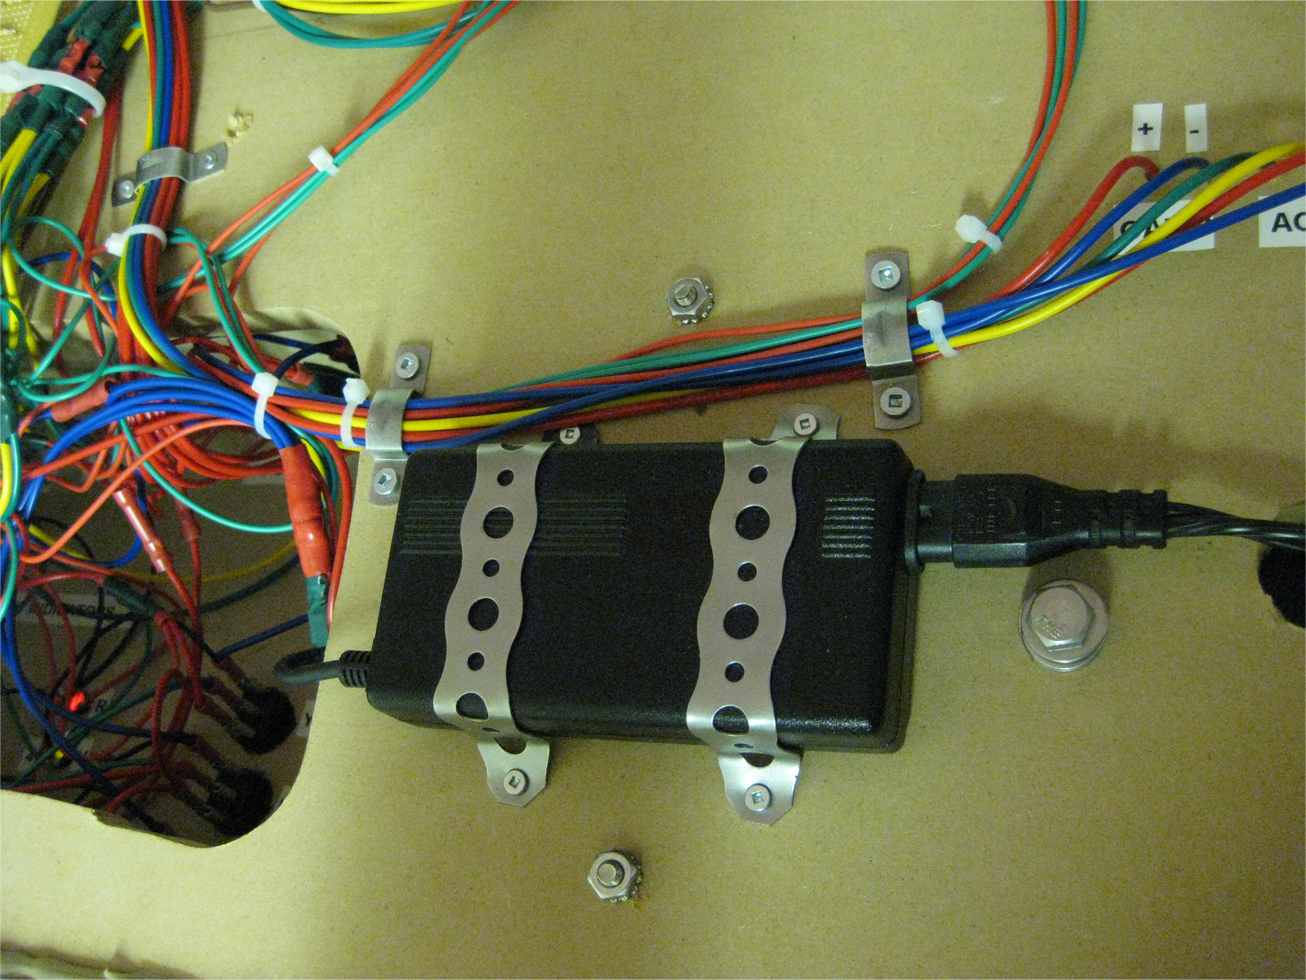 A 12 volt AC inverter attached to the bottom of a model railroad control panel with metal brackets